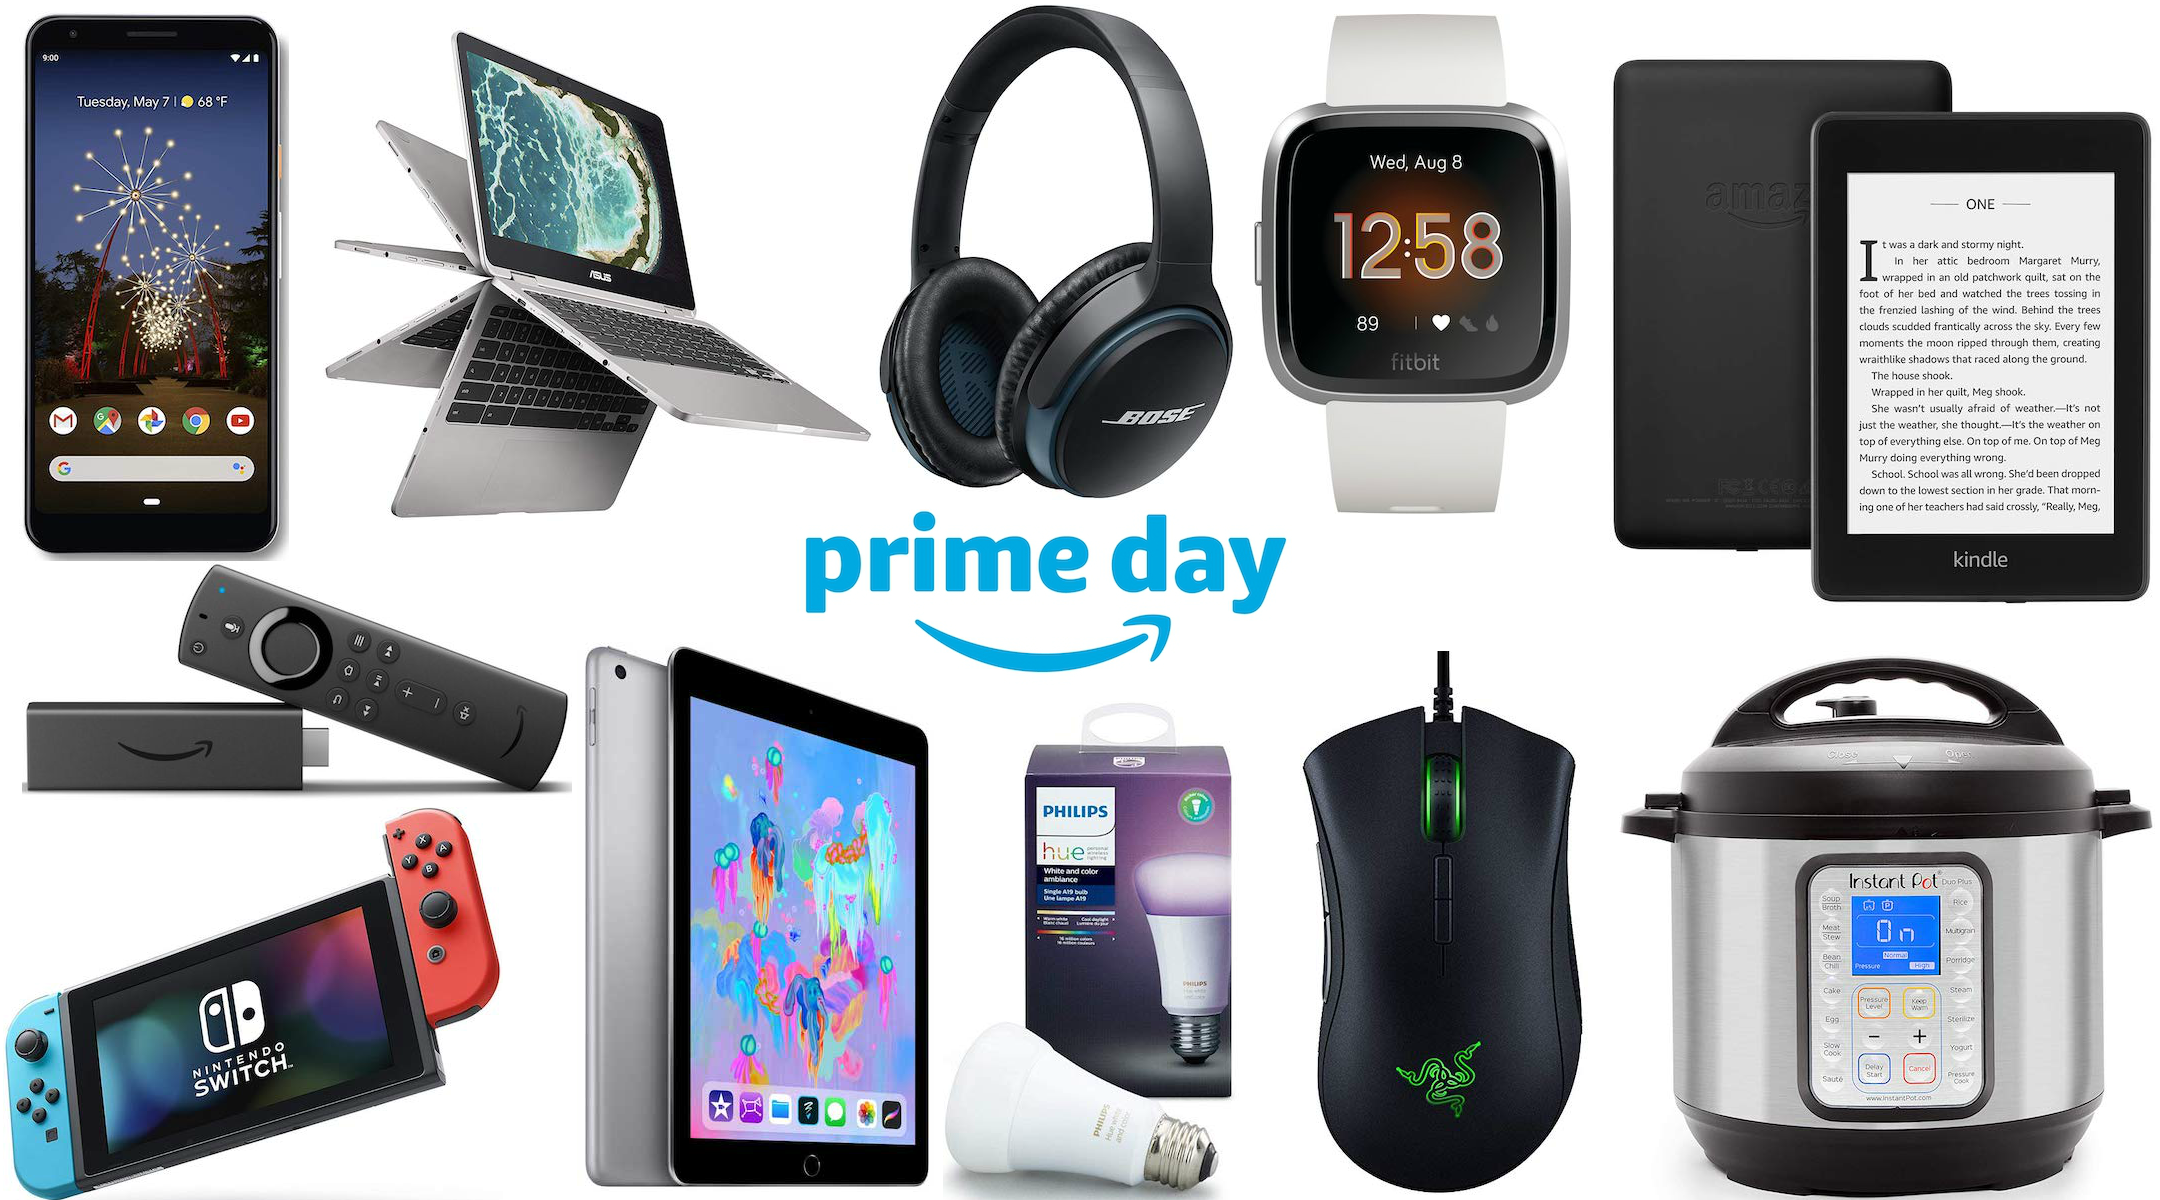 Amazon Prime Day best deals: Laptops, phones, TVs, and more tech